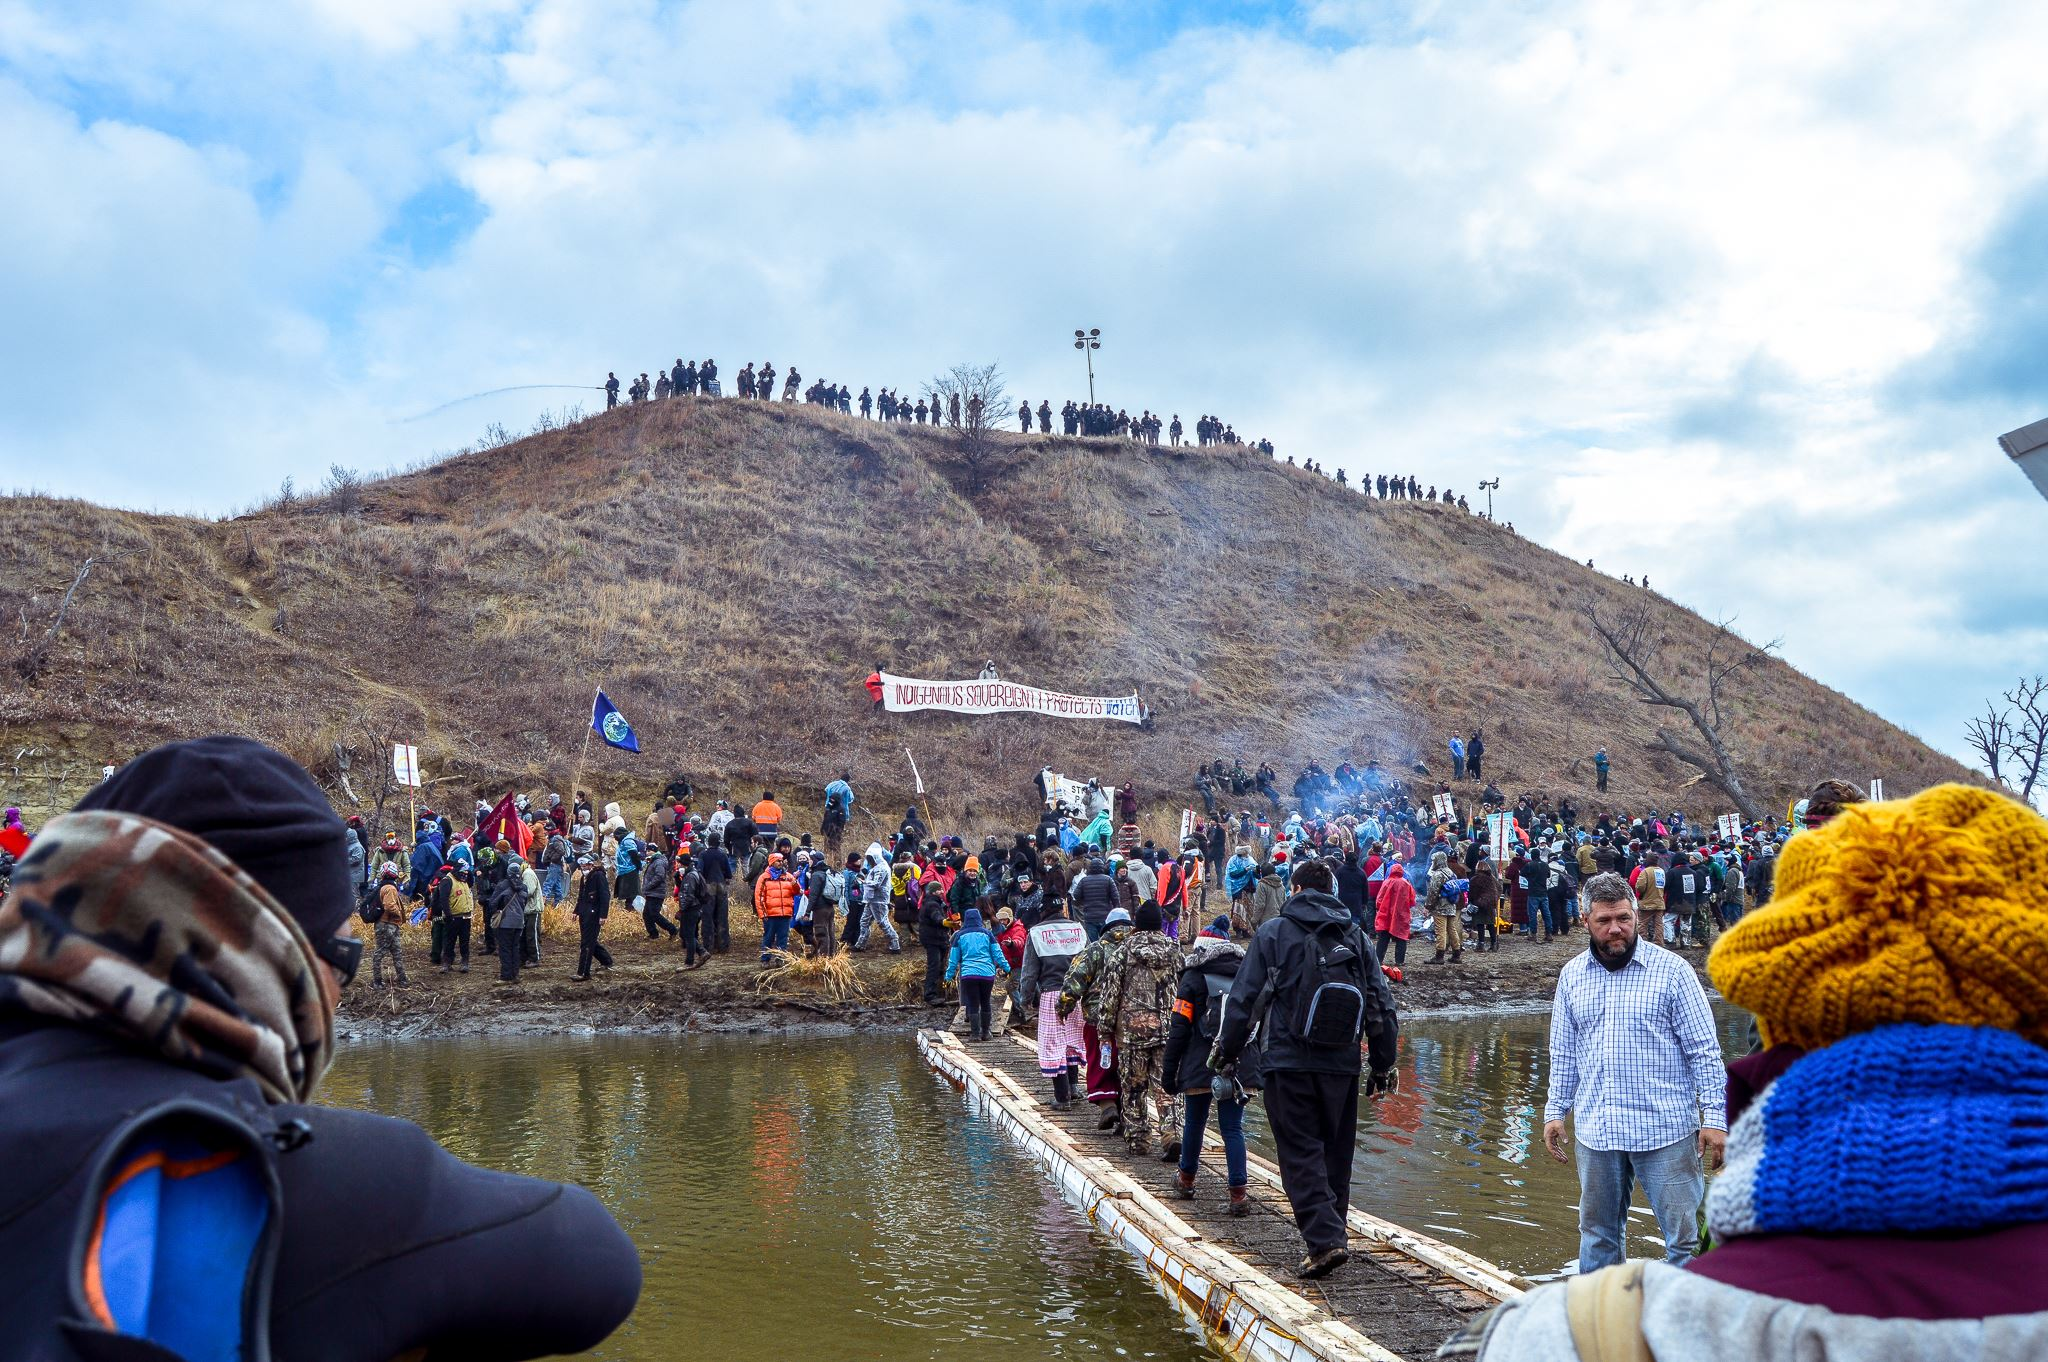 Dana Lone Hill: A big 'wopila' to all the #NoDAPL water protectors